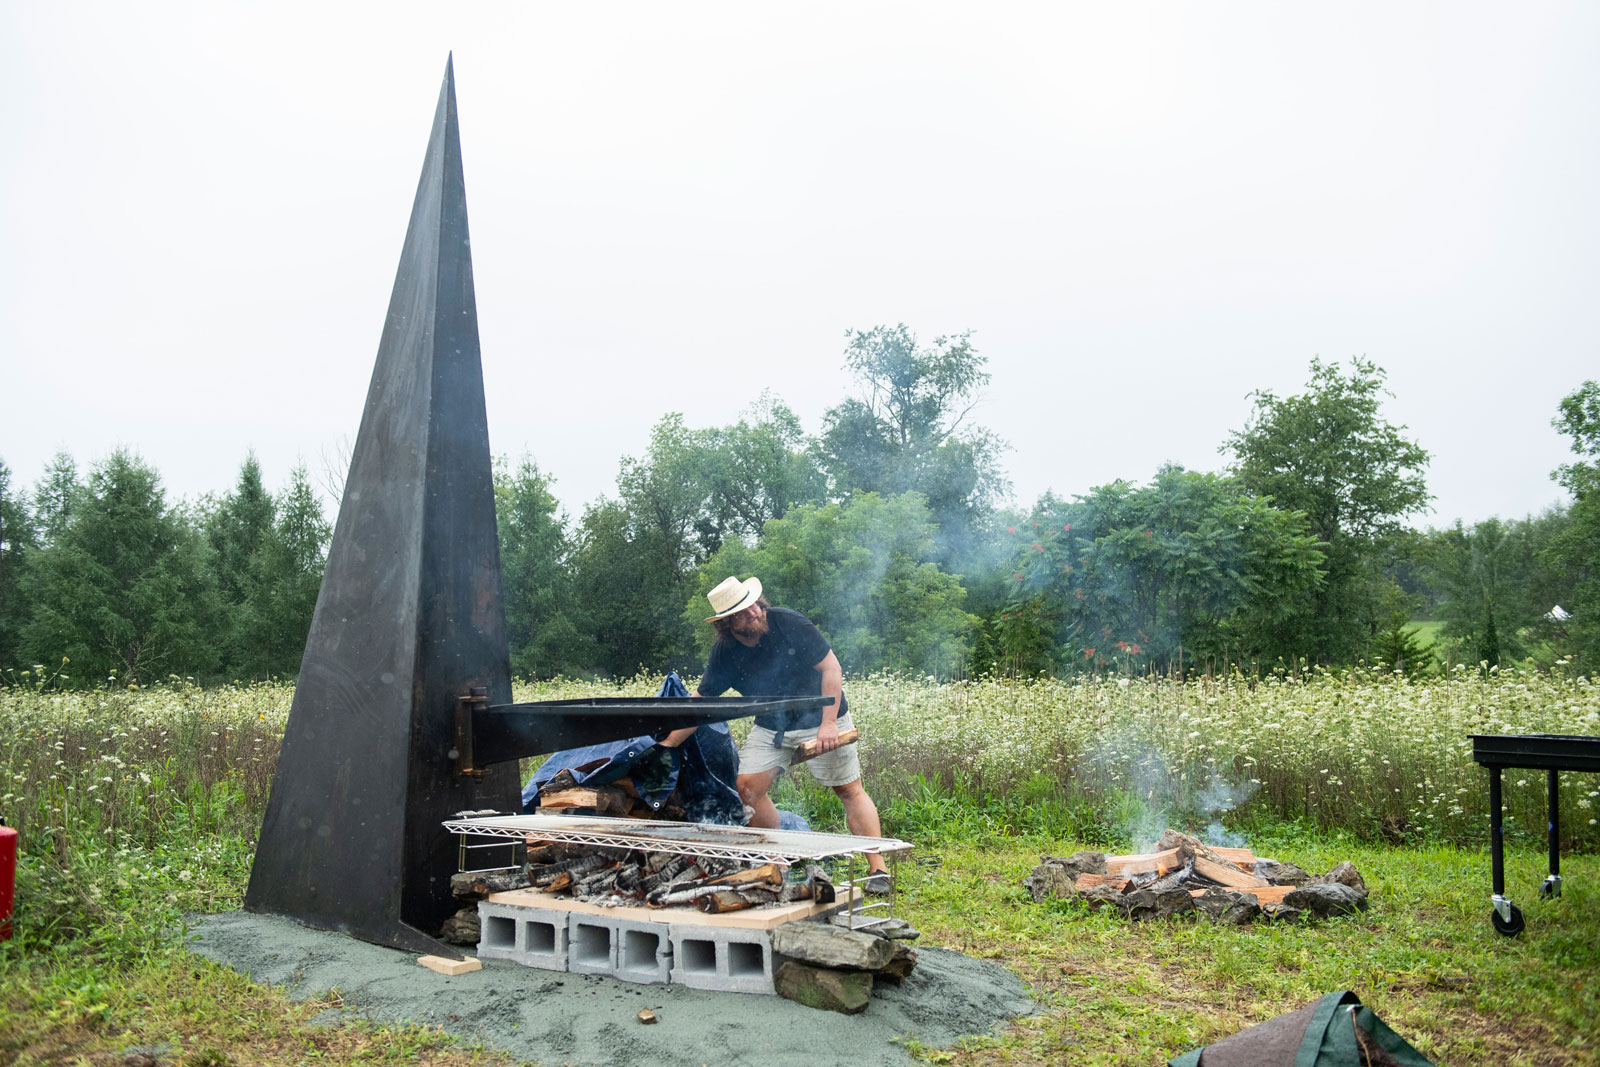 Hudson Valley Artist Builds Incredible Sculptures for Cooking Over Live Fire